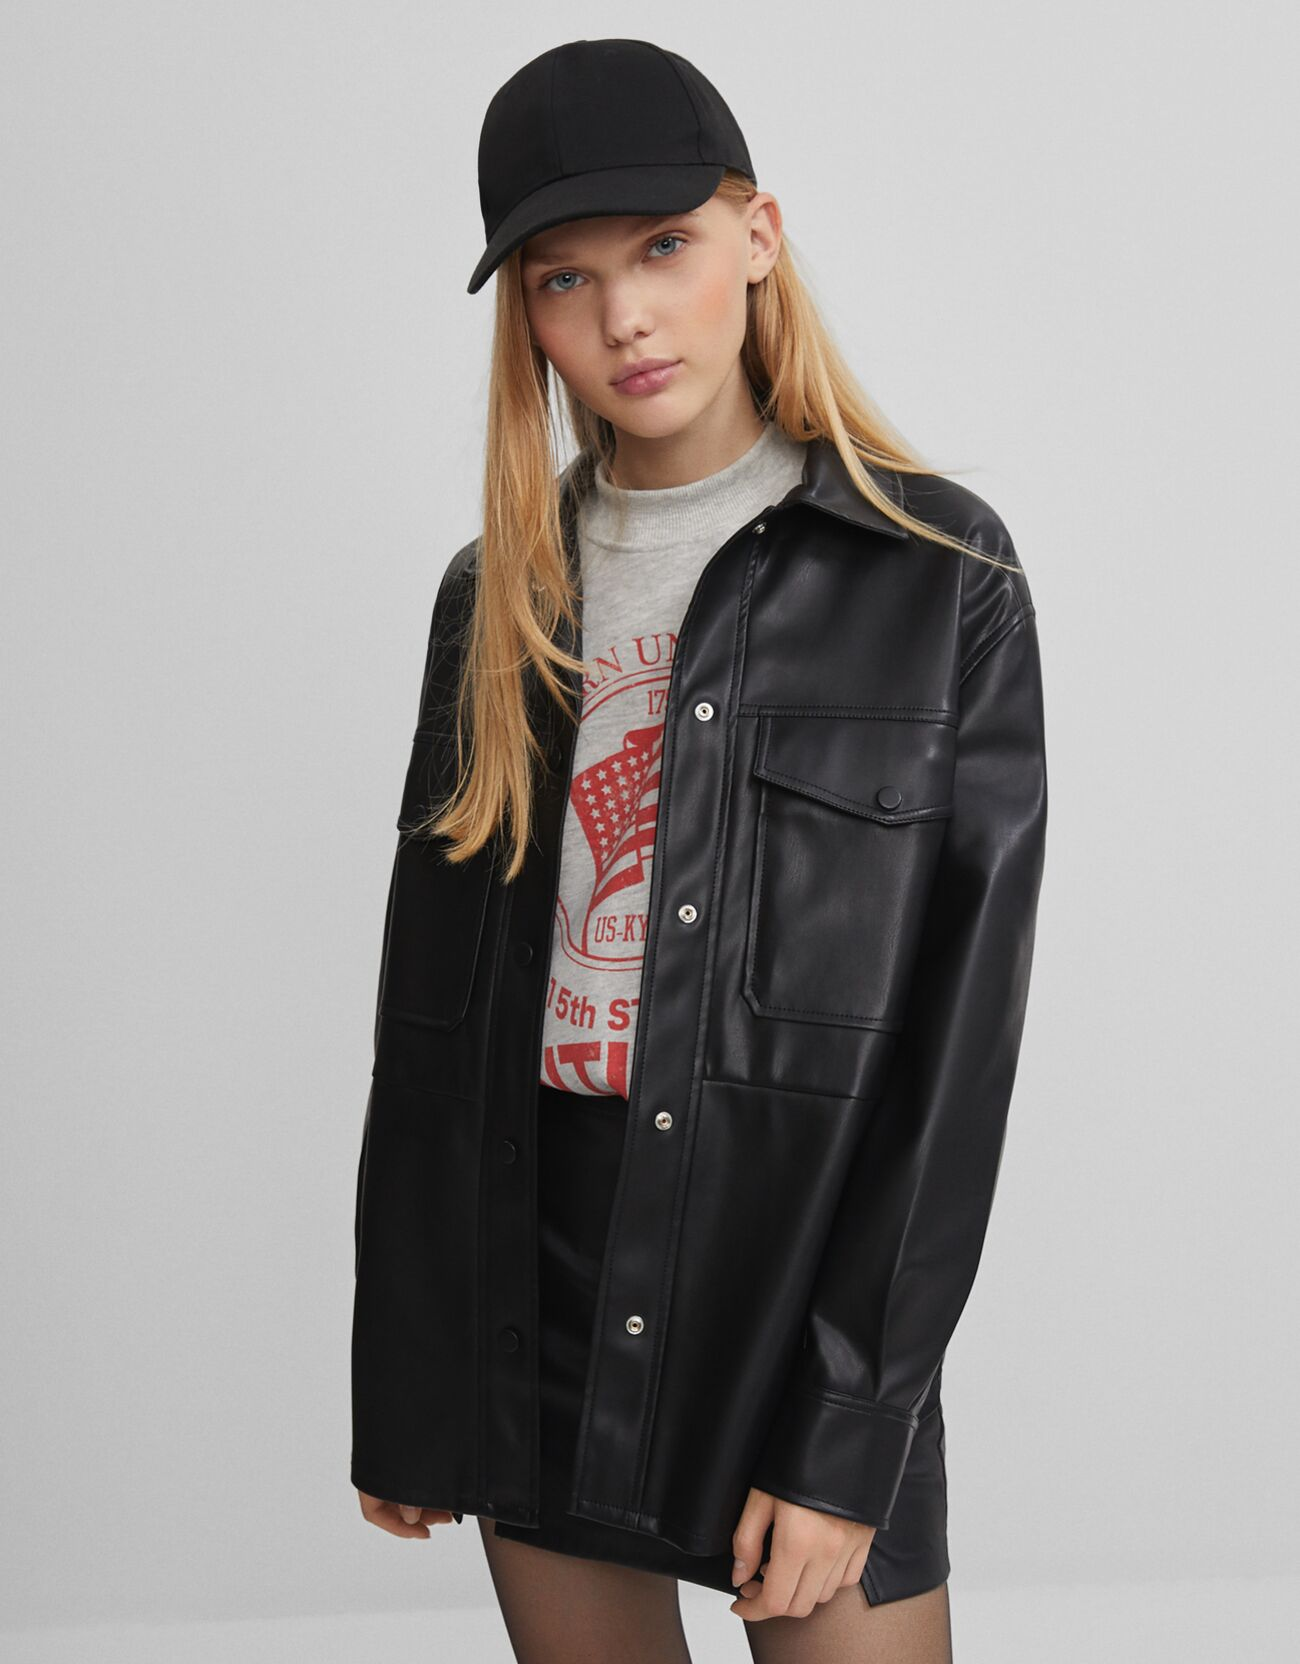 Patent leather shirt with hooks